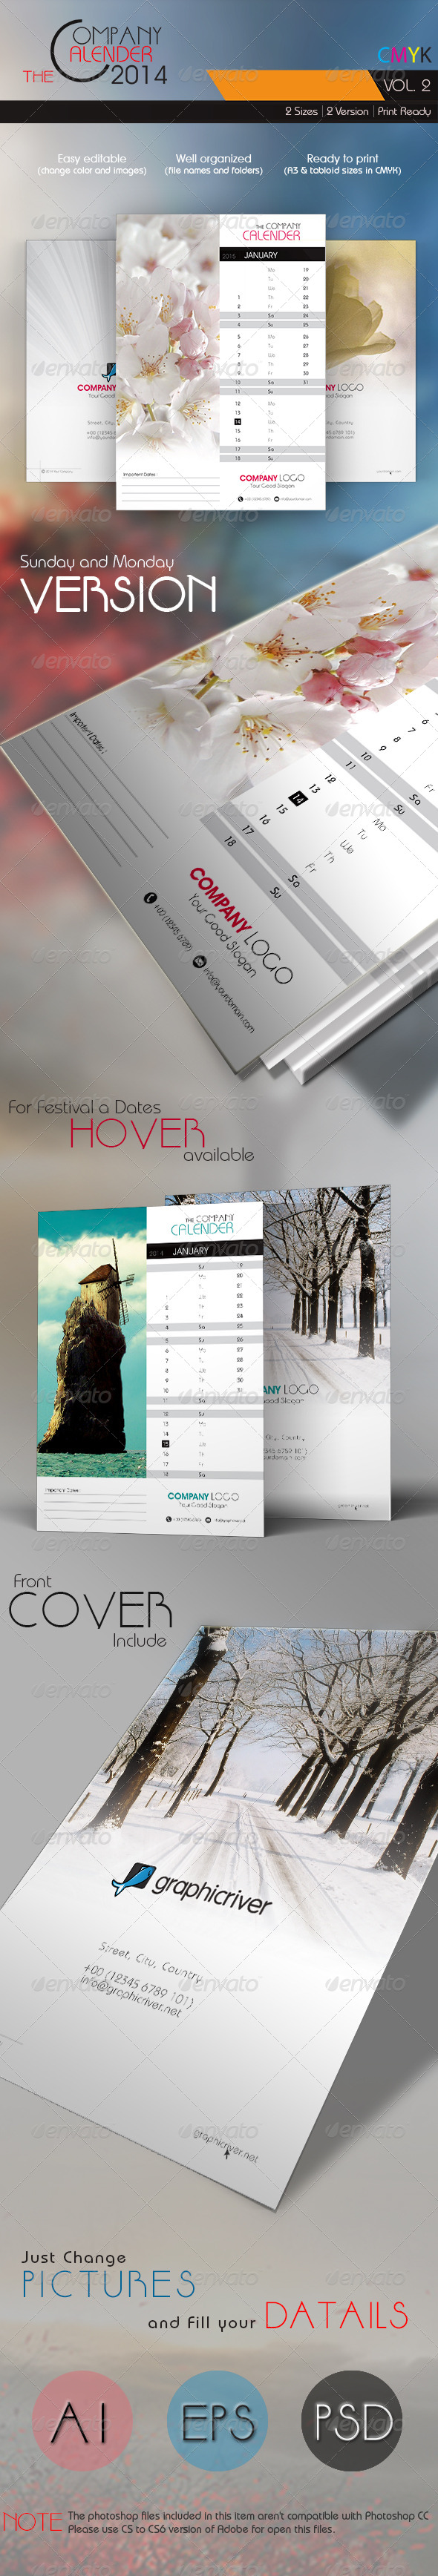 GraphicRiver The Company Calender 2014 Vol 2 5801516